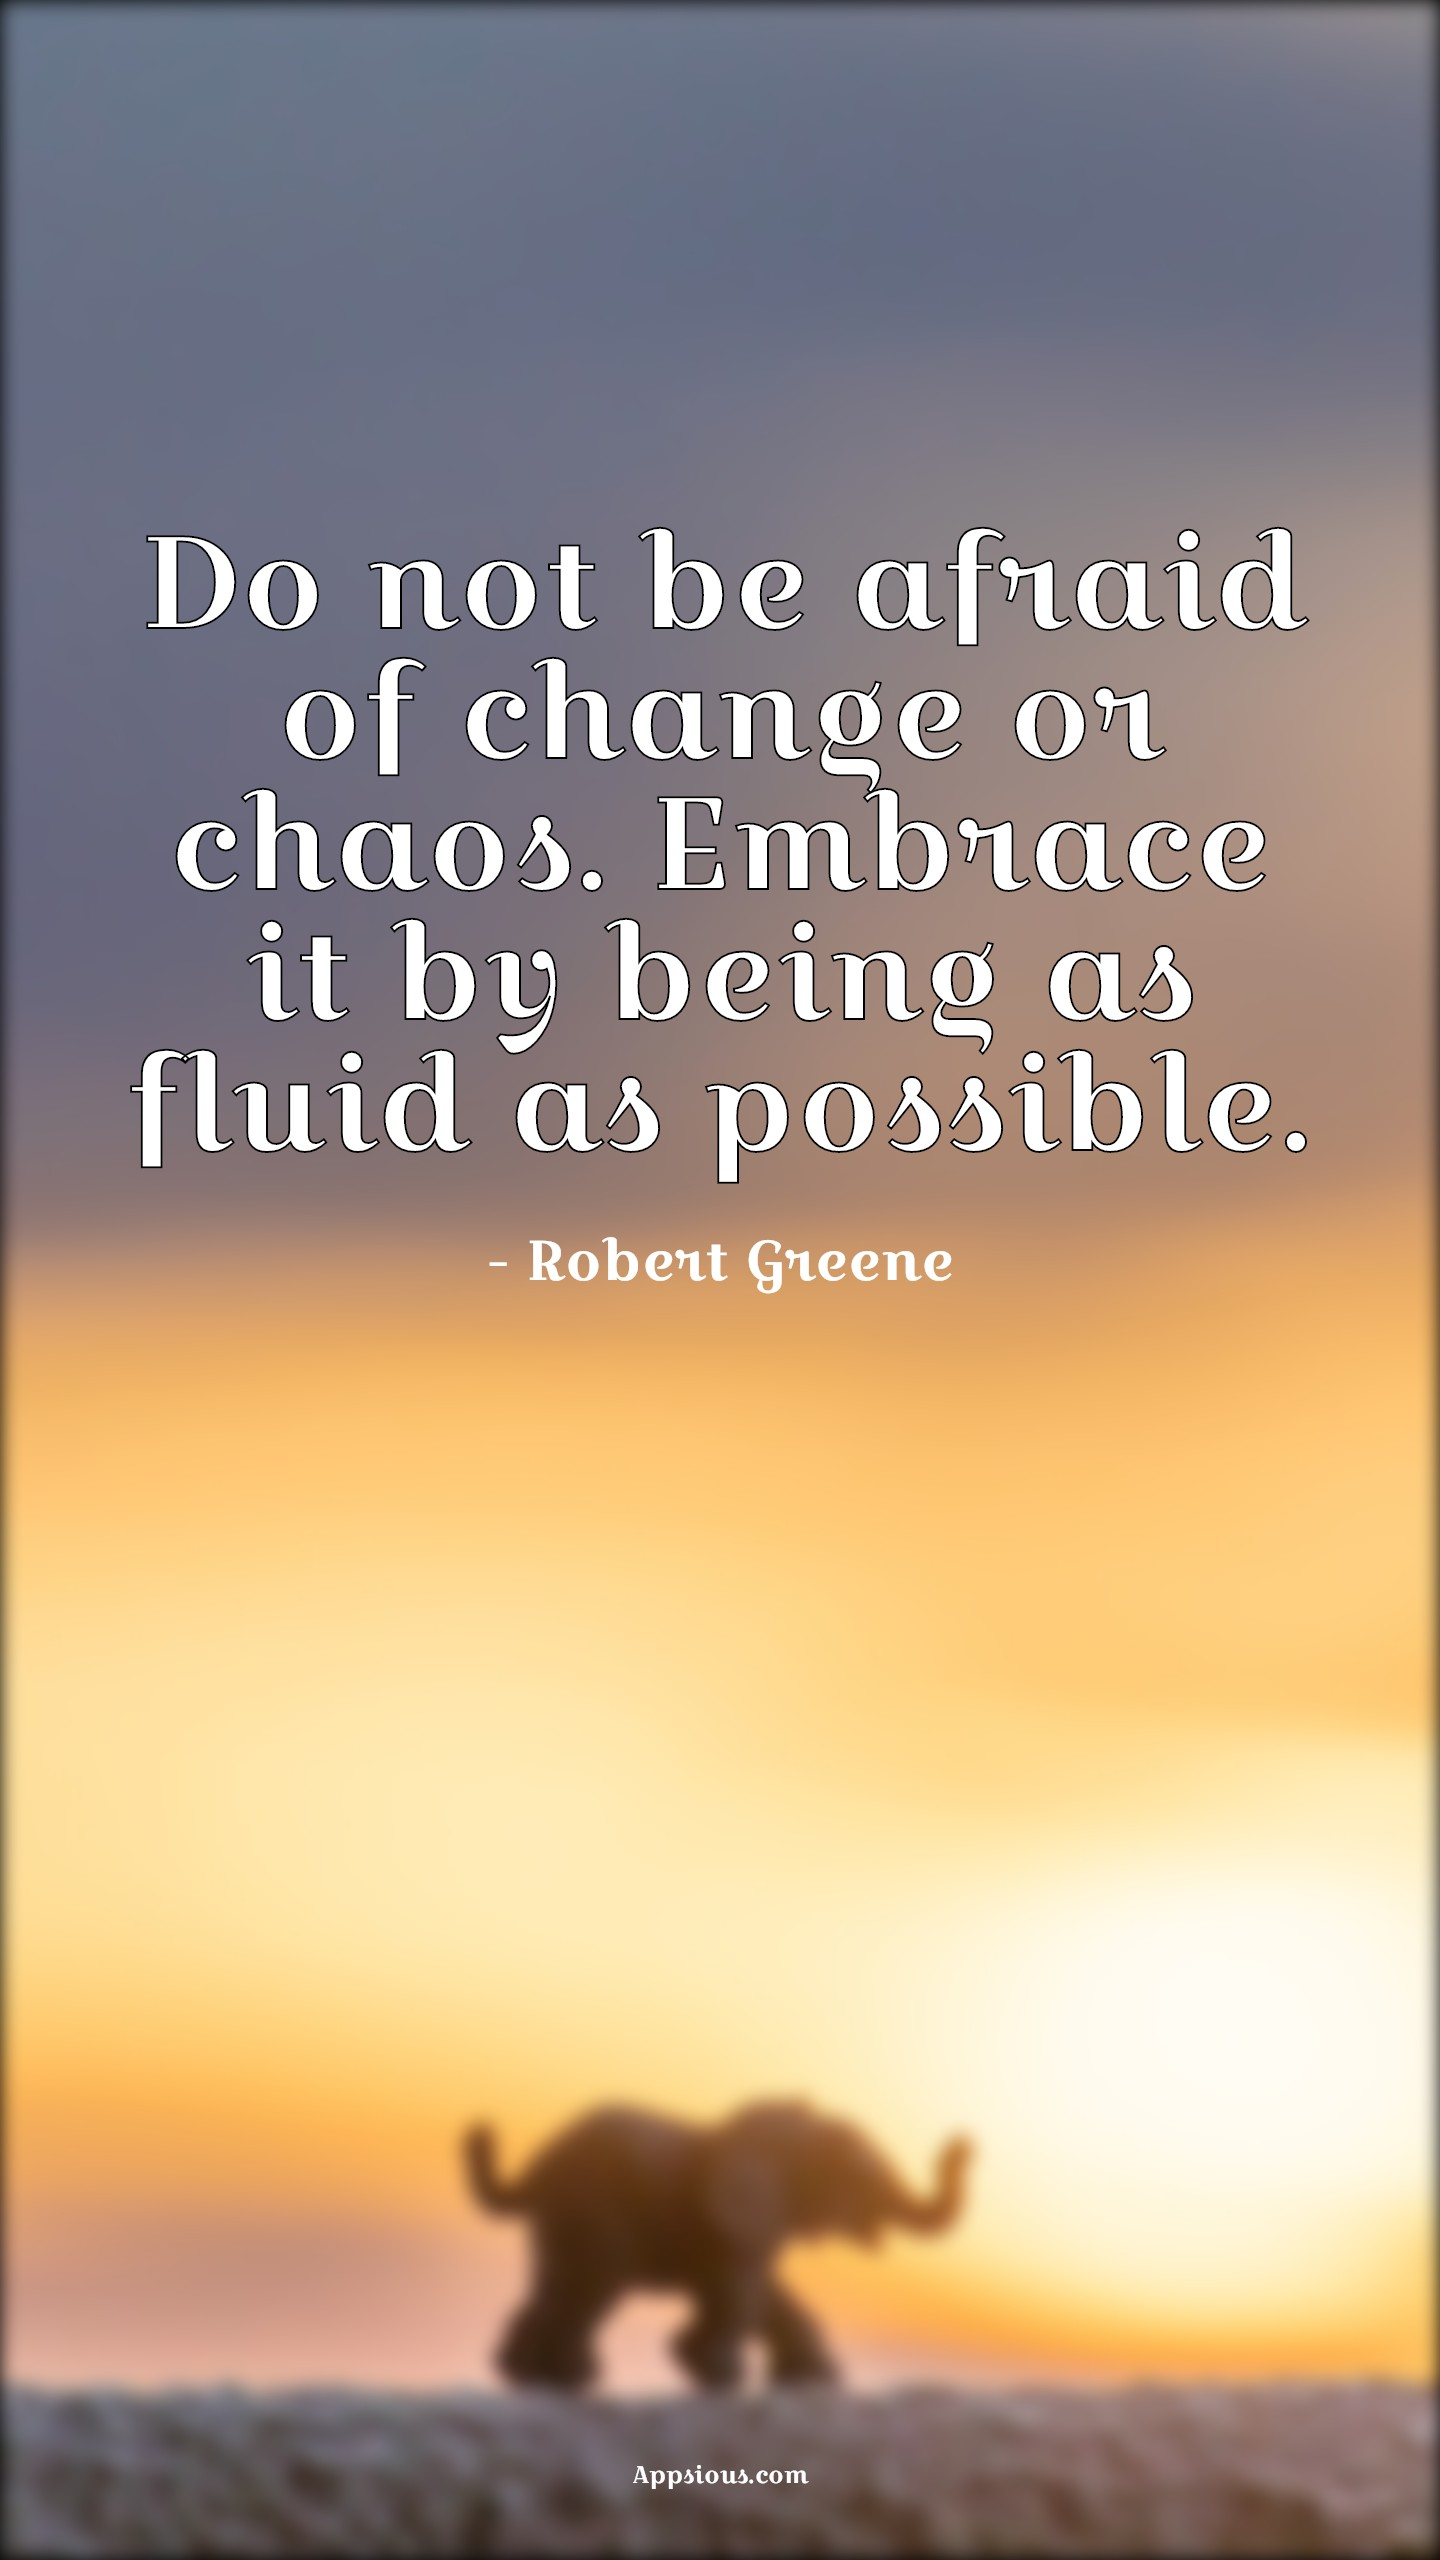 Do not be afraid of change or chaos. Embrace it by being as fluid as possible.